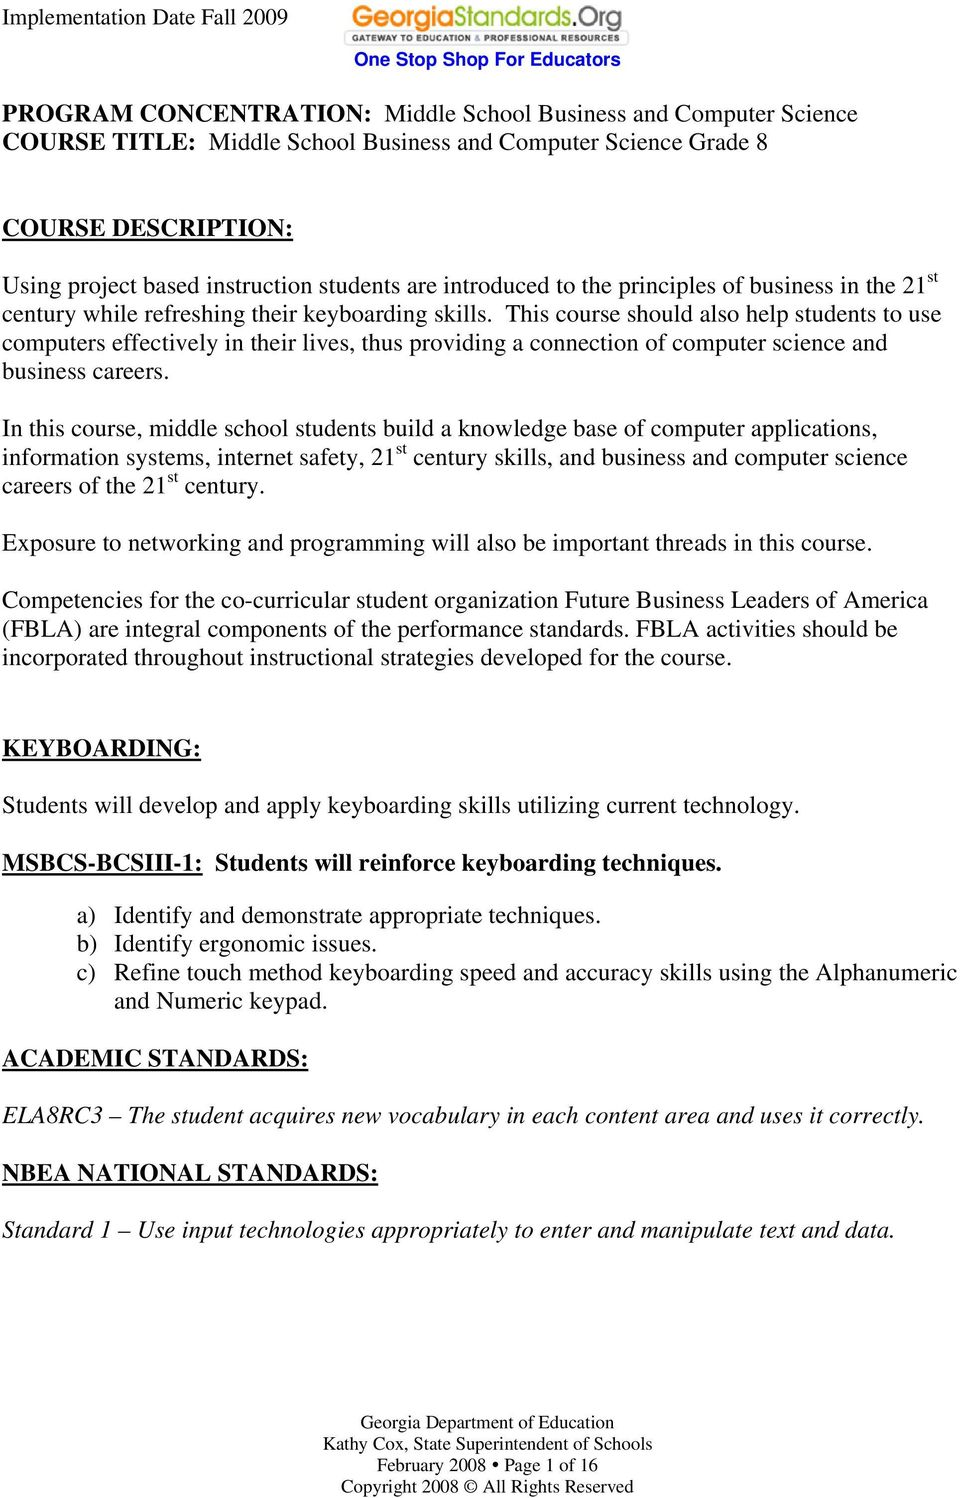 PROGRAM CONCENTRATION: Middle School Business and Computer Science